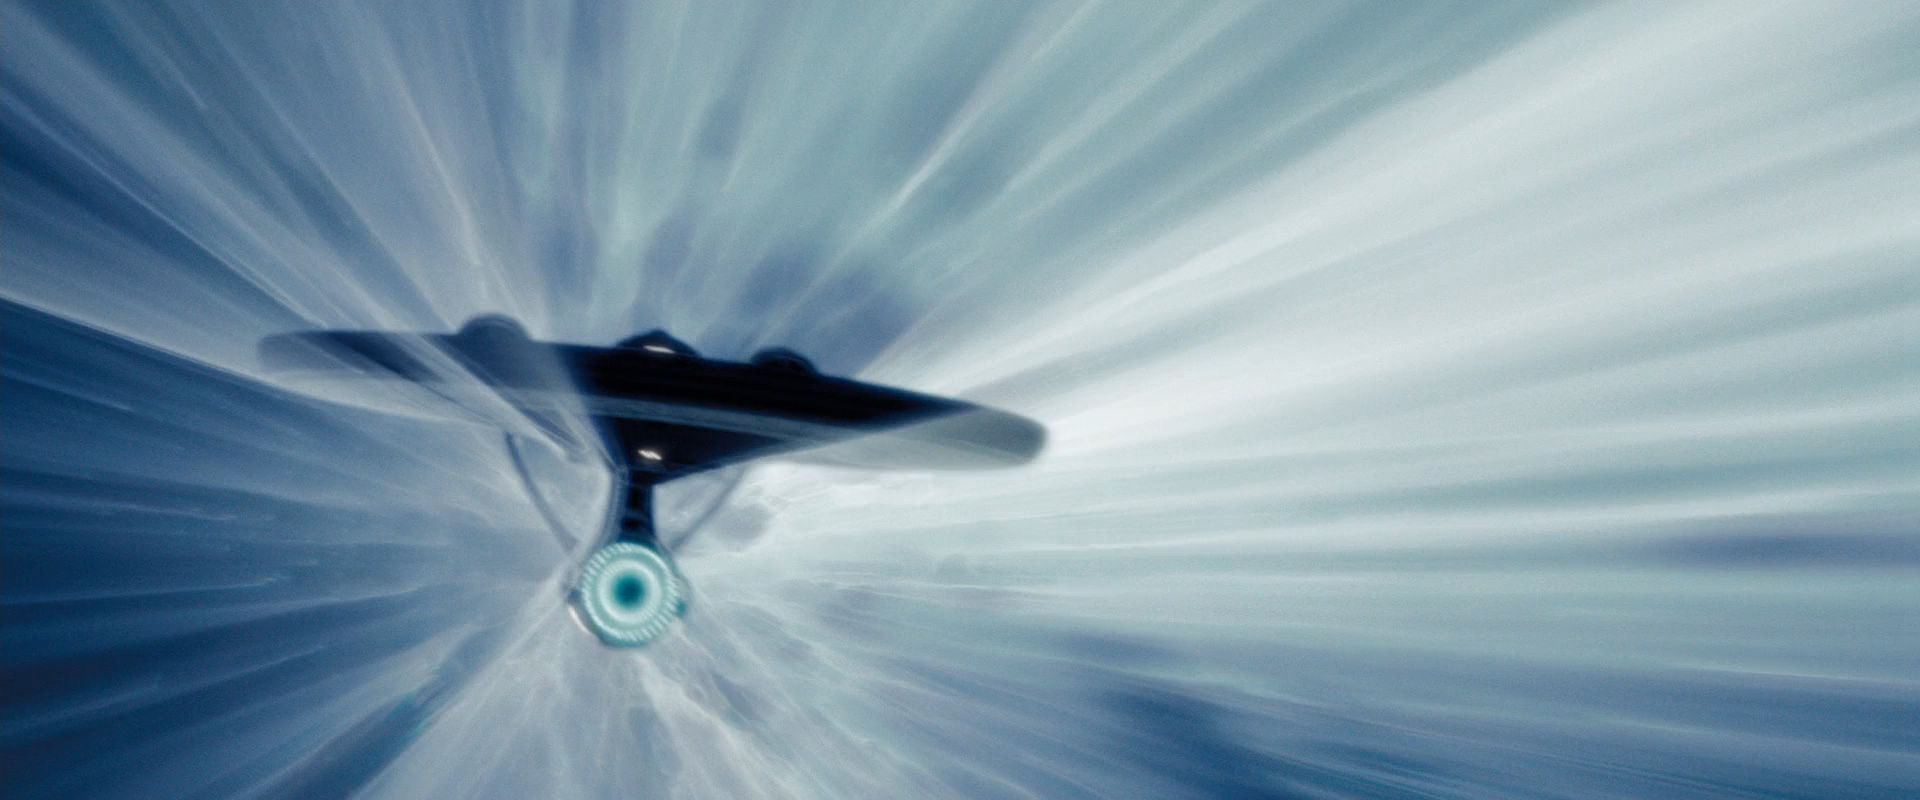 Star_Trek_2009_Warp.jpg